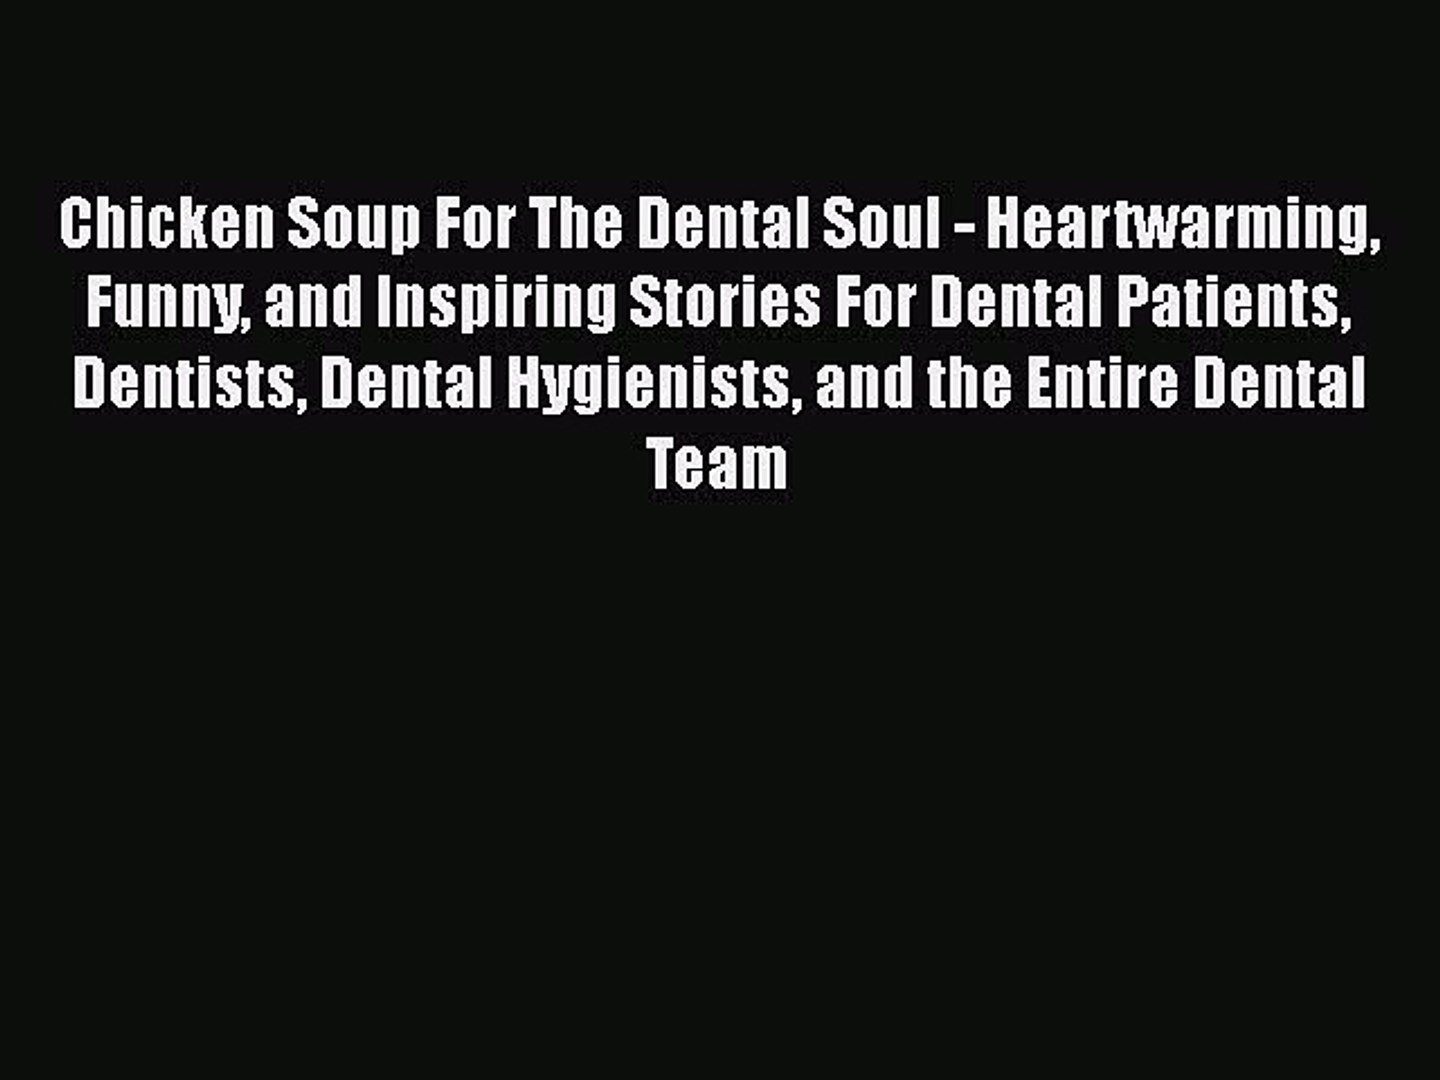 Read Chicken Soup For The Dental Soul - Heartwarming Funny and Inspiring  Stories For Dental